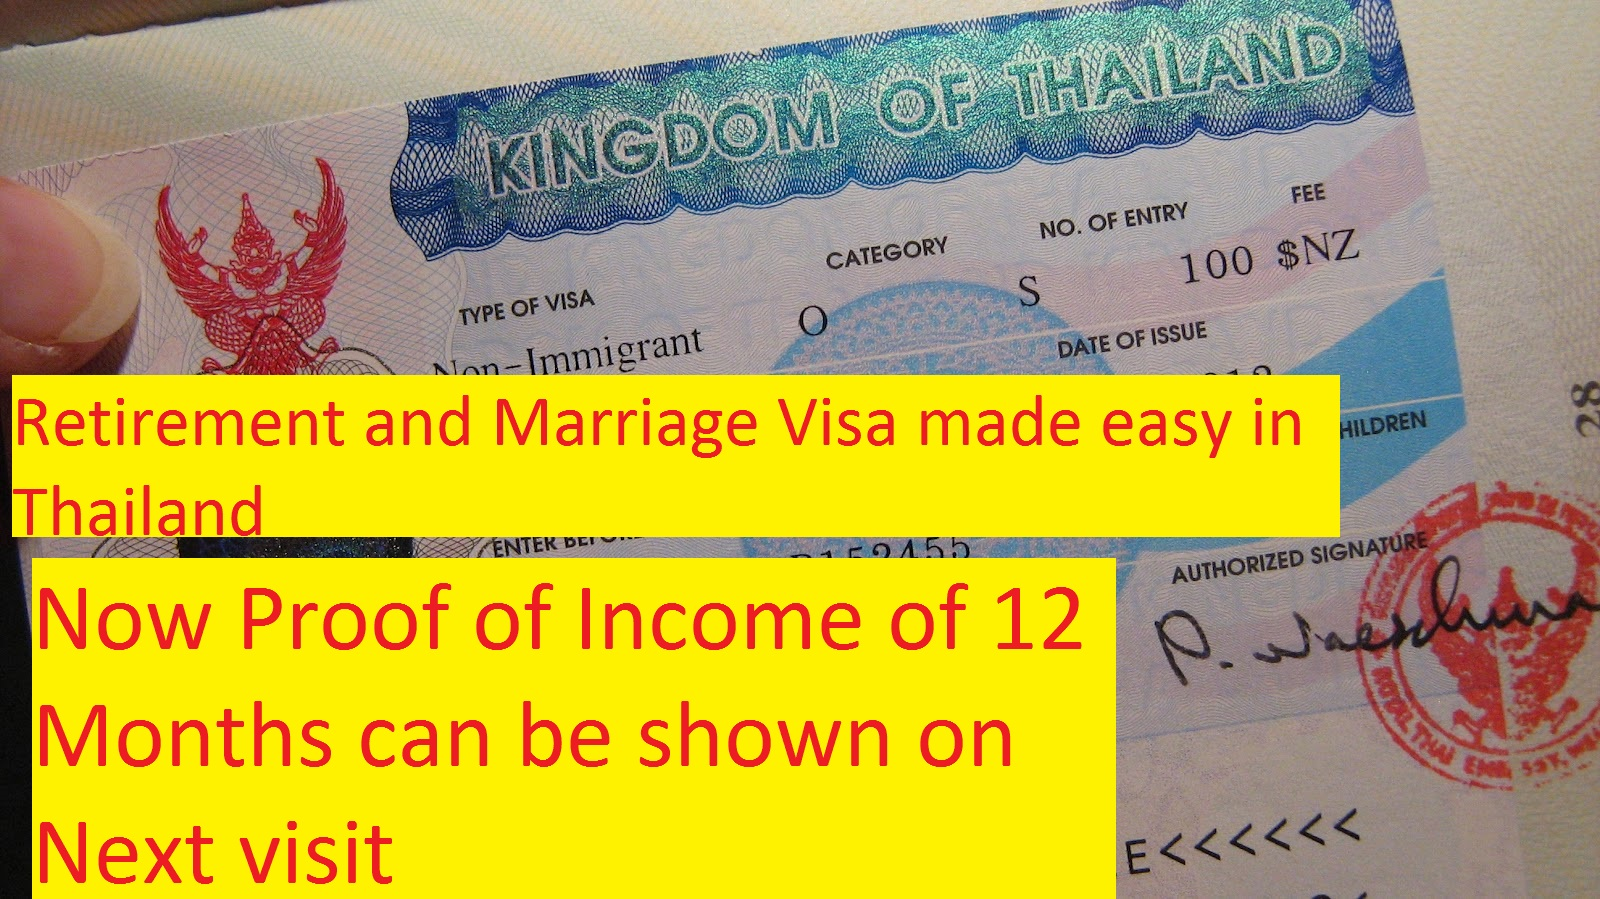 Retirement and Marriage Visa made easy in Thailand